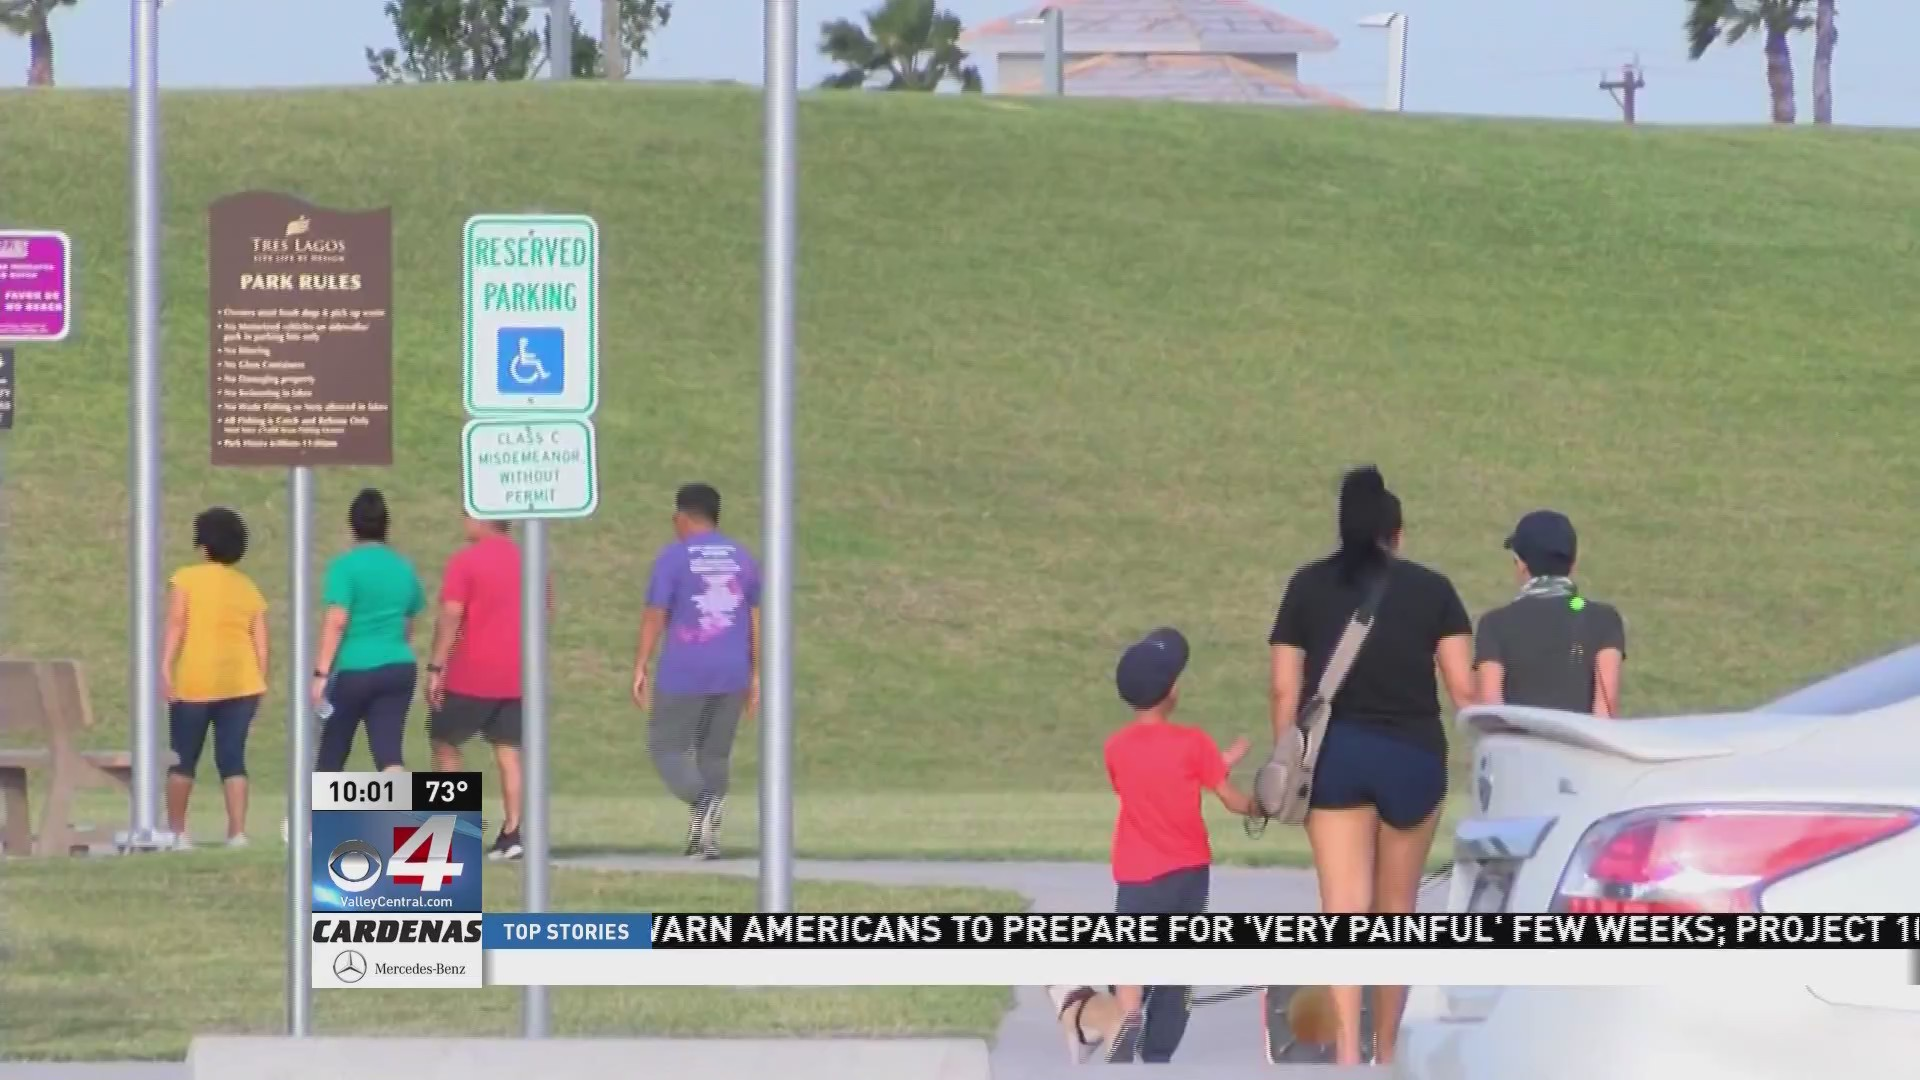 City of McAllen official addresses why parks remain open during COVID-19 pandemic